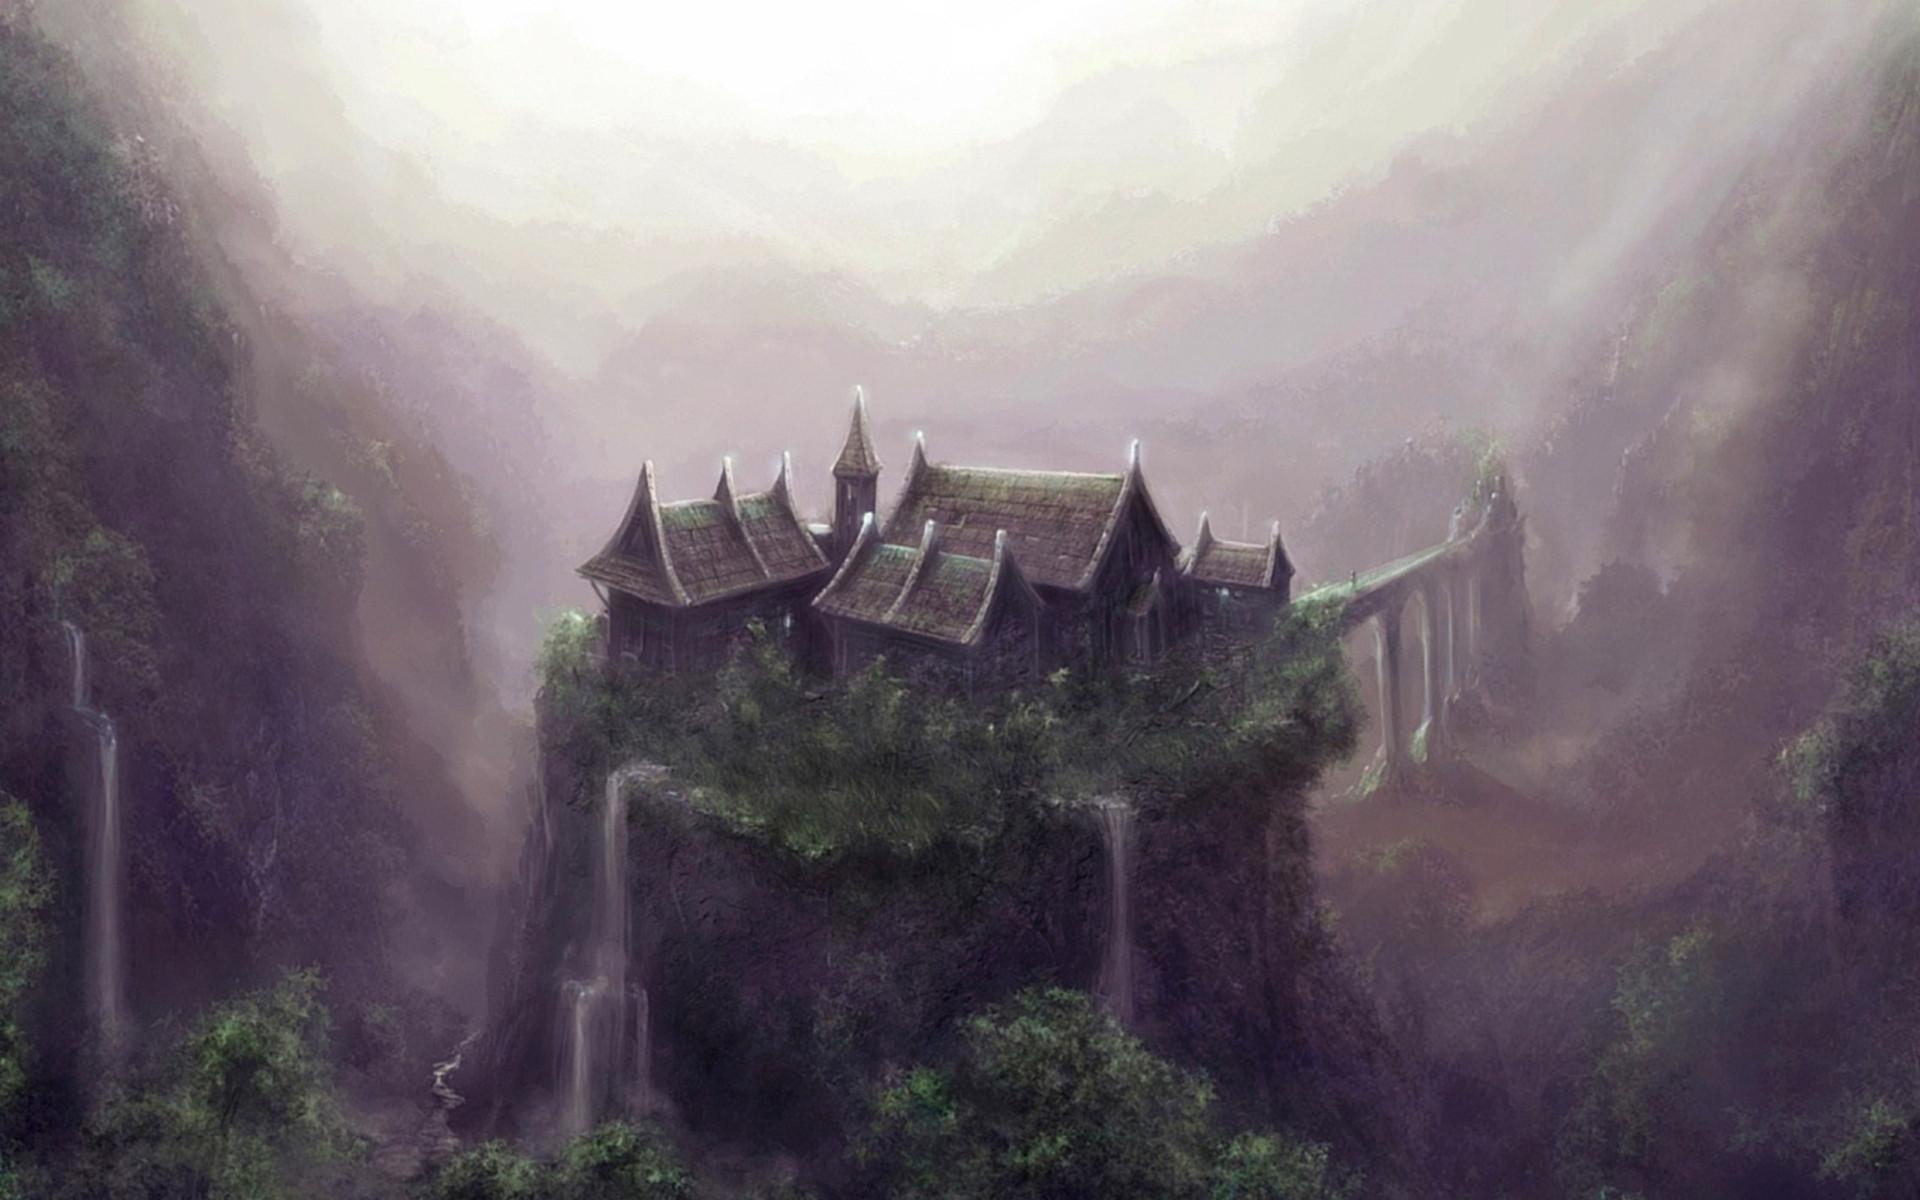 house wudang mountain china art fantasy wallpaper | 1920x1200